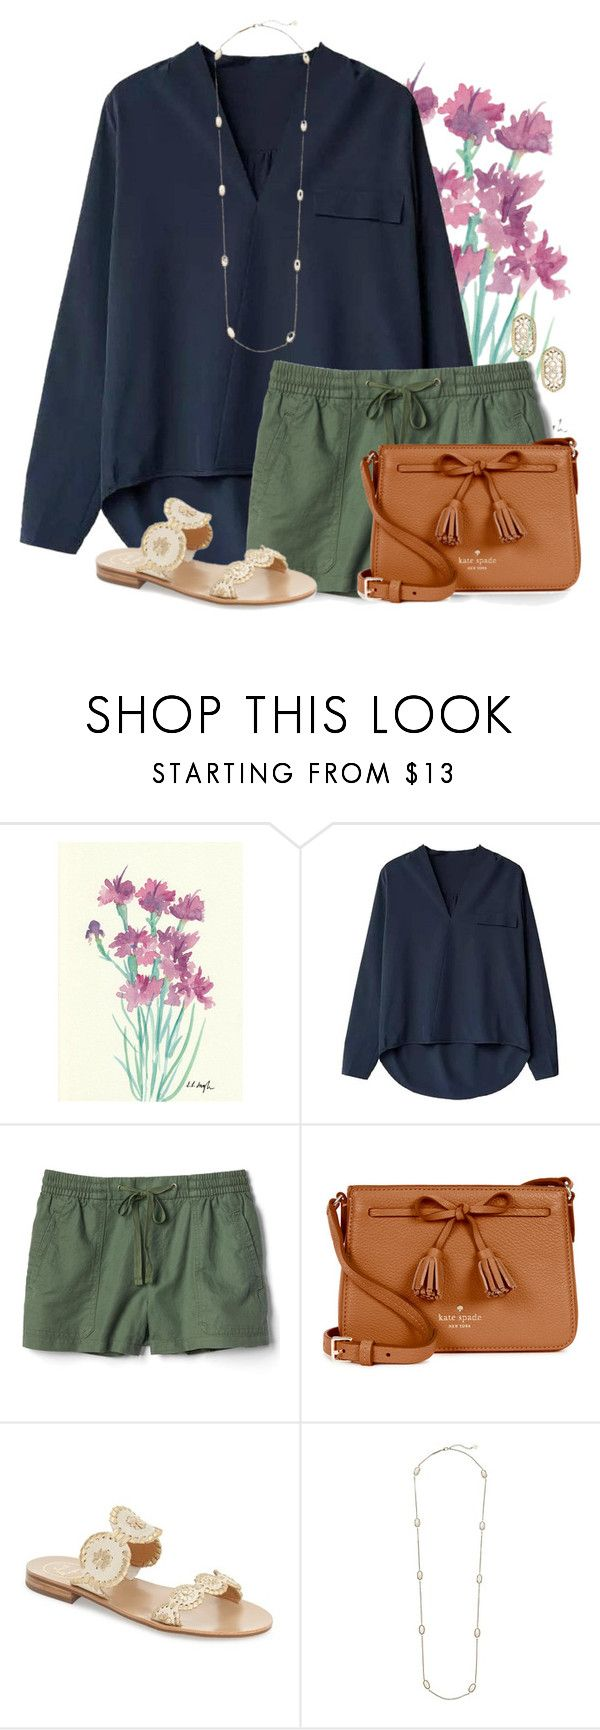 """""""Comfy and Cozy"""" by auburnlady ❤ liked on Polyvore featuring Gap, Kate Spade, Jack Rogers and Kendra Scott"""